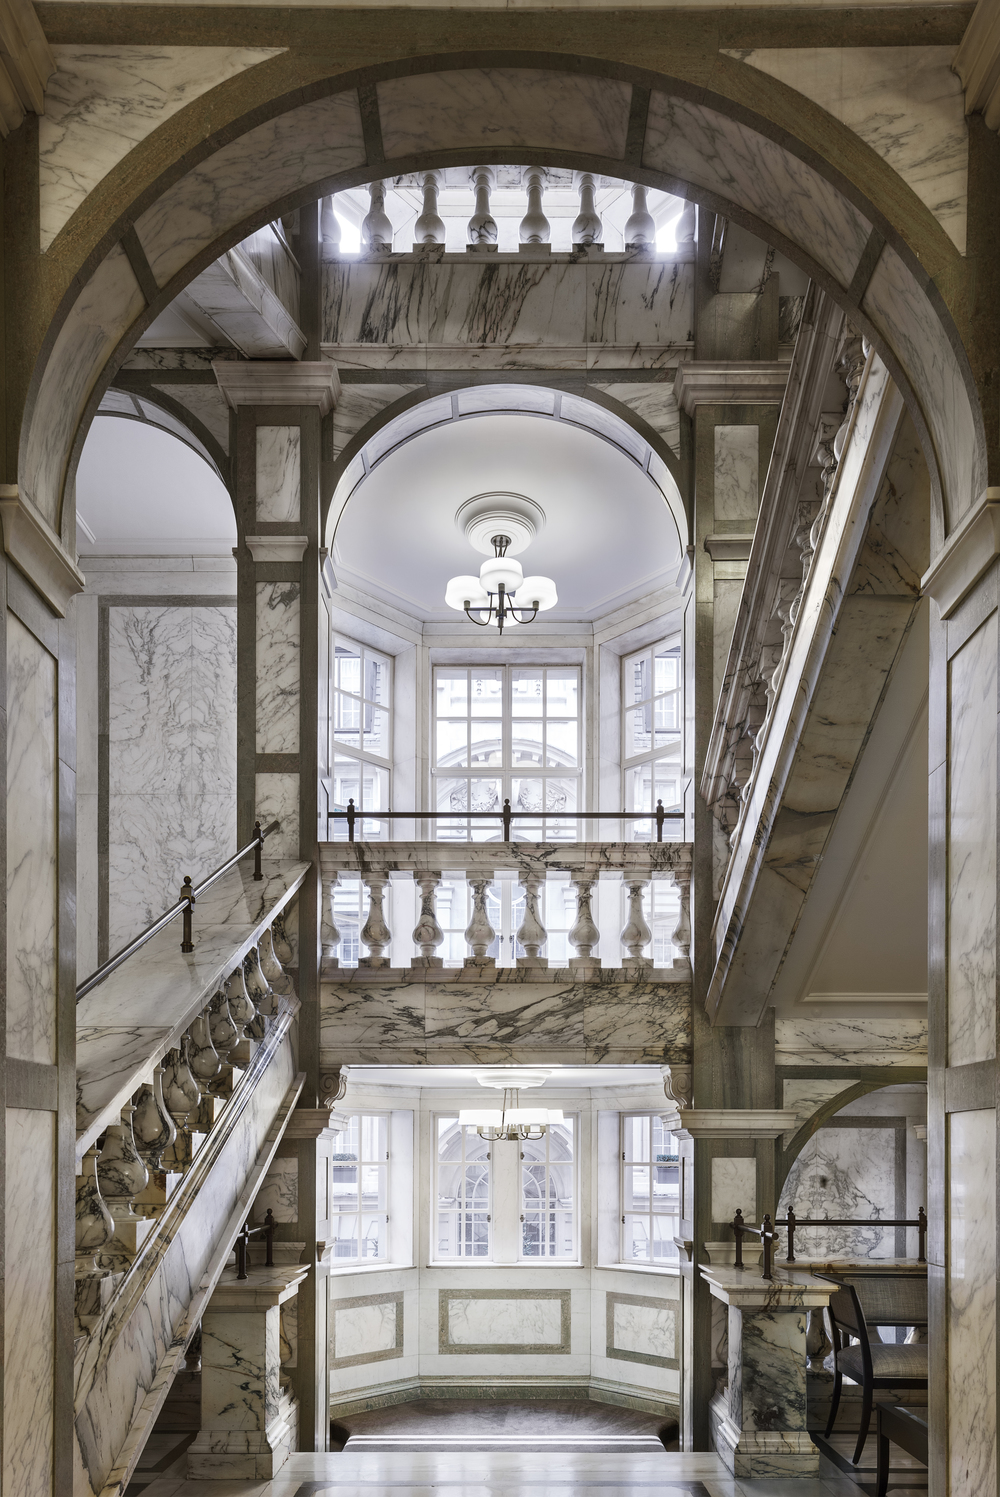 LDN_61385526_Rosewood_London_Grand_Marble_Staircase_2.jpg